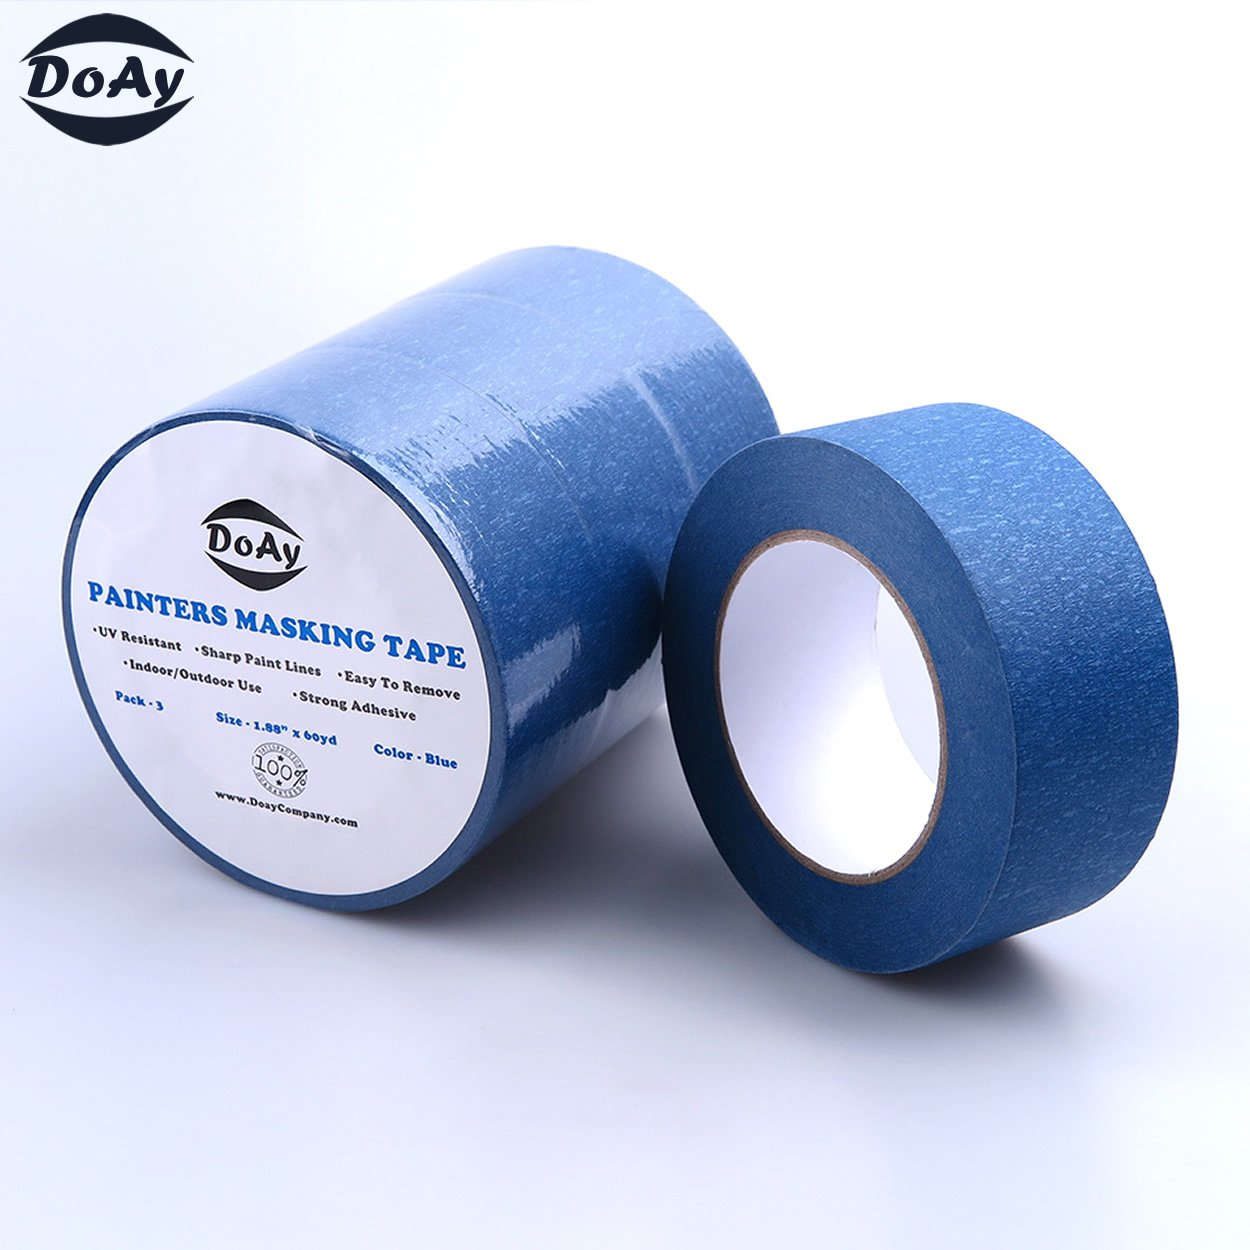 Painters Tape 3pk 2'' x 60 yd | Professional Blue Painters Masking Tape | Easy and Clean Removal | Multi Surface Use | ISO 9001 Worldwide Quality | Leaves No Residue Behind | (48mm .1.88in) (3 Pack) by DoAy (Image #3)